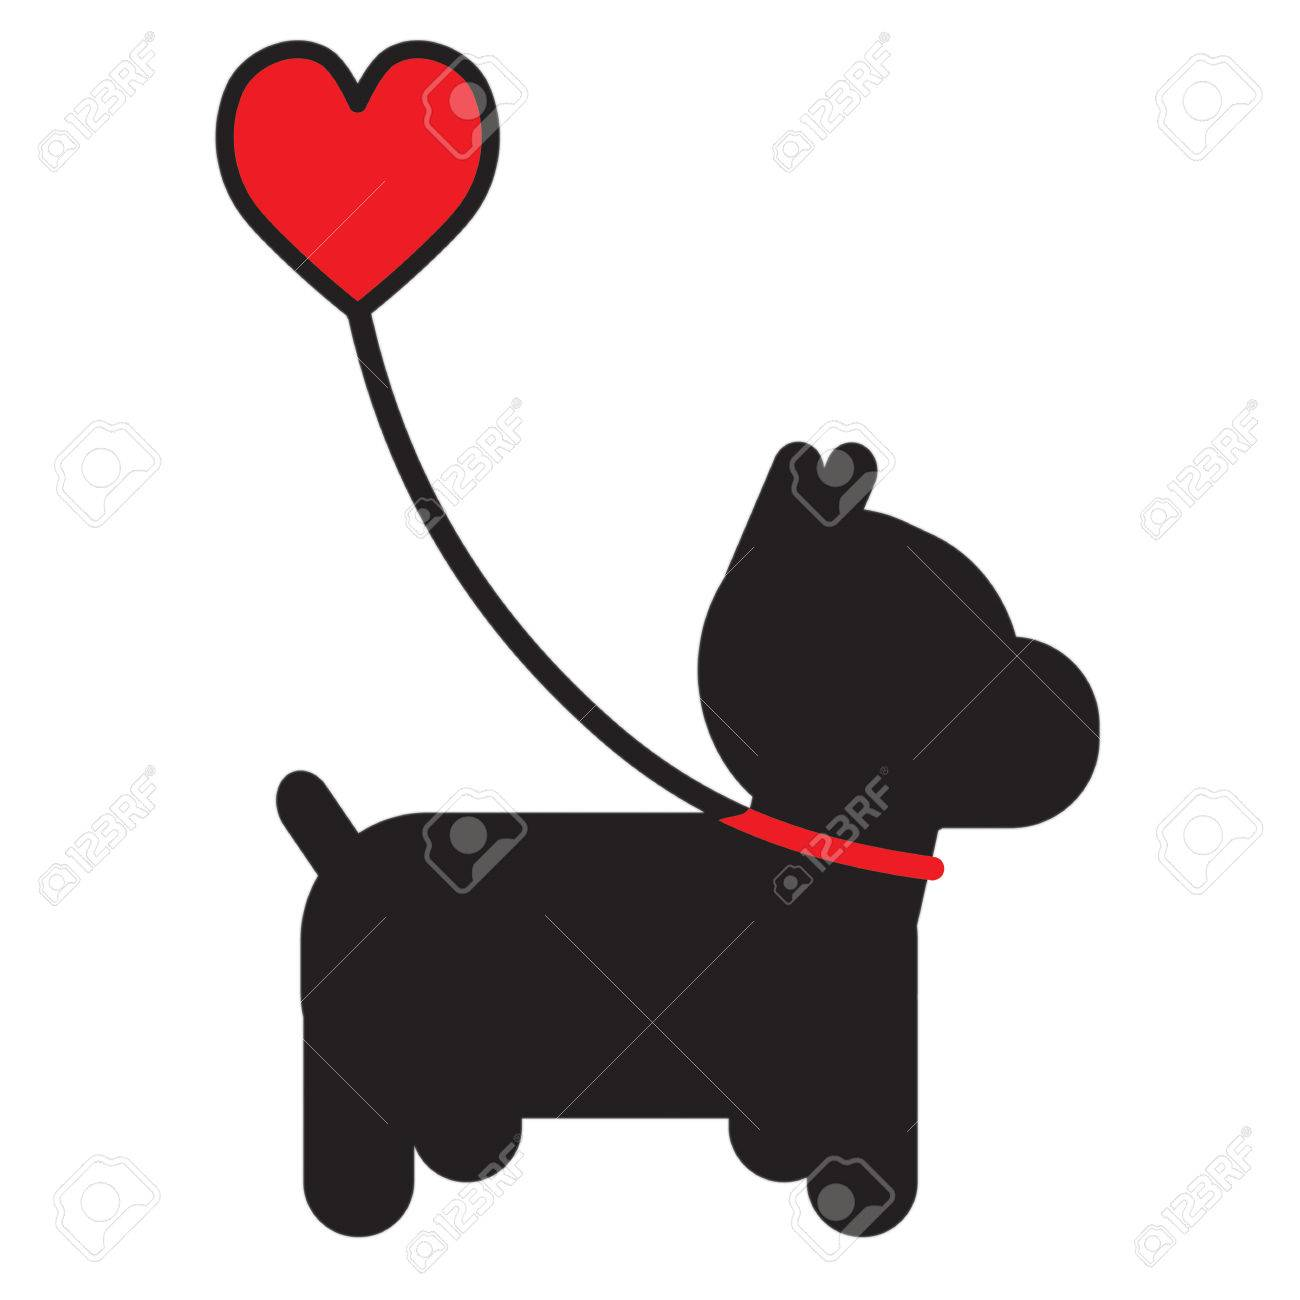 A silhouette of a little black dog on a leash that has a heart for a handle - 77425899